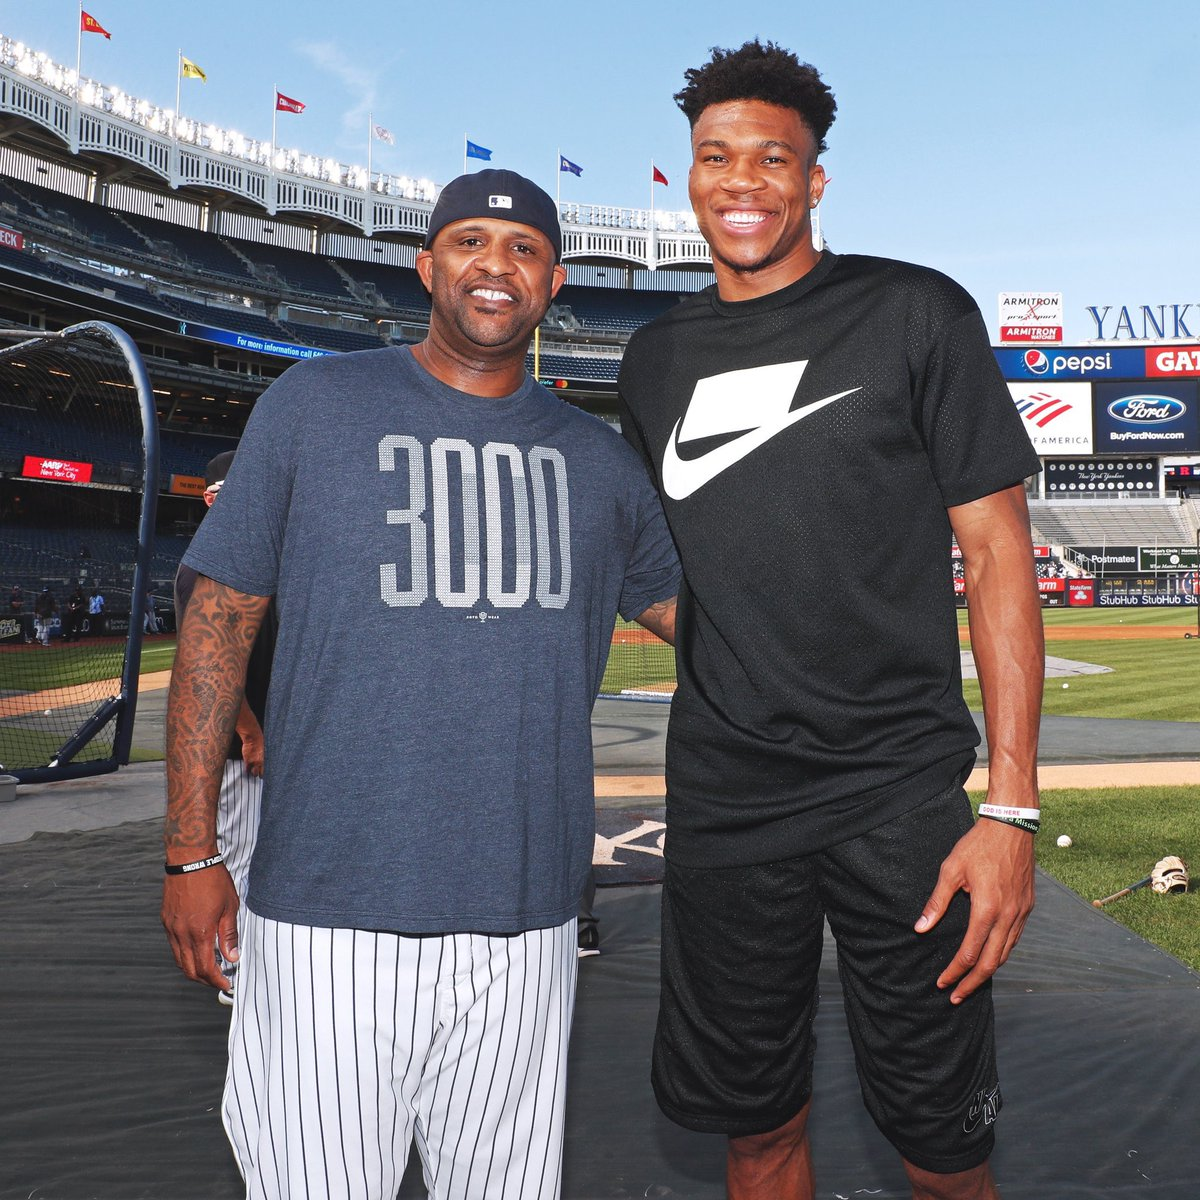 NBA players go back home and take pics with their AAU coach